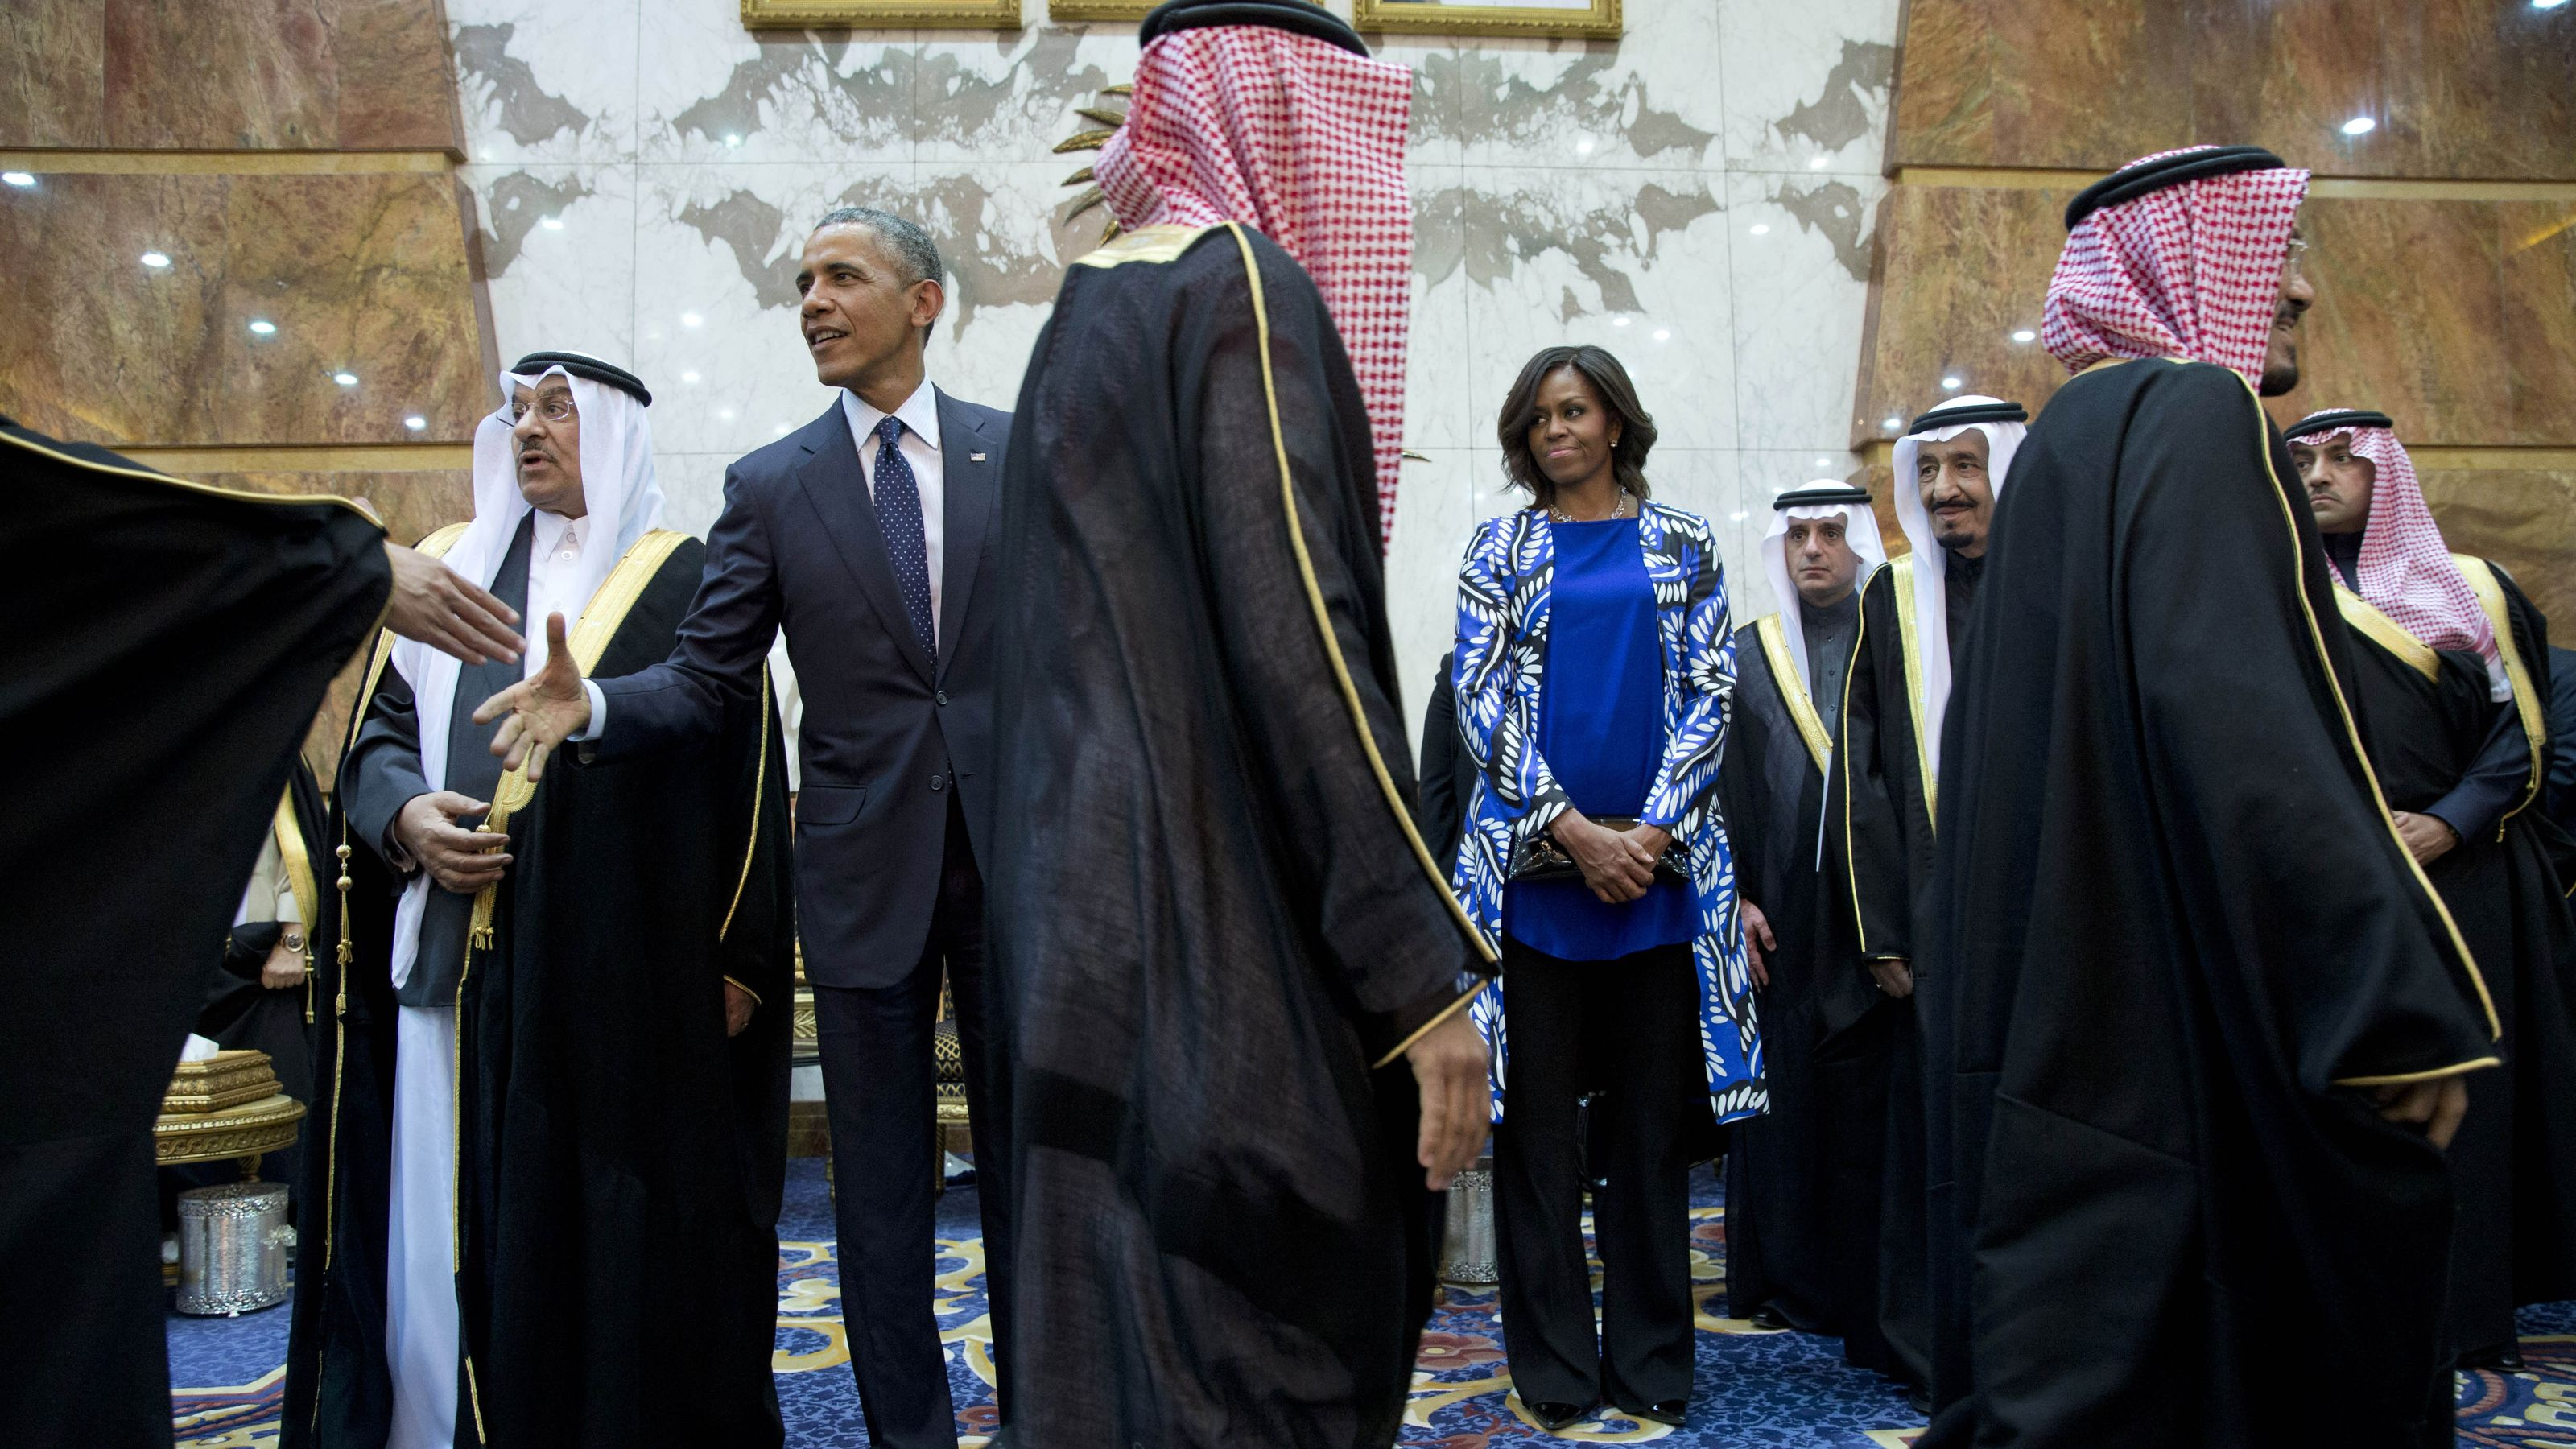 635579589141980202-AP-Obama-US-Saudi-Arabia